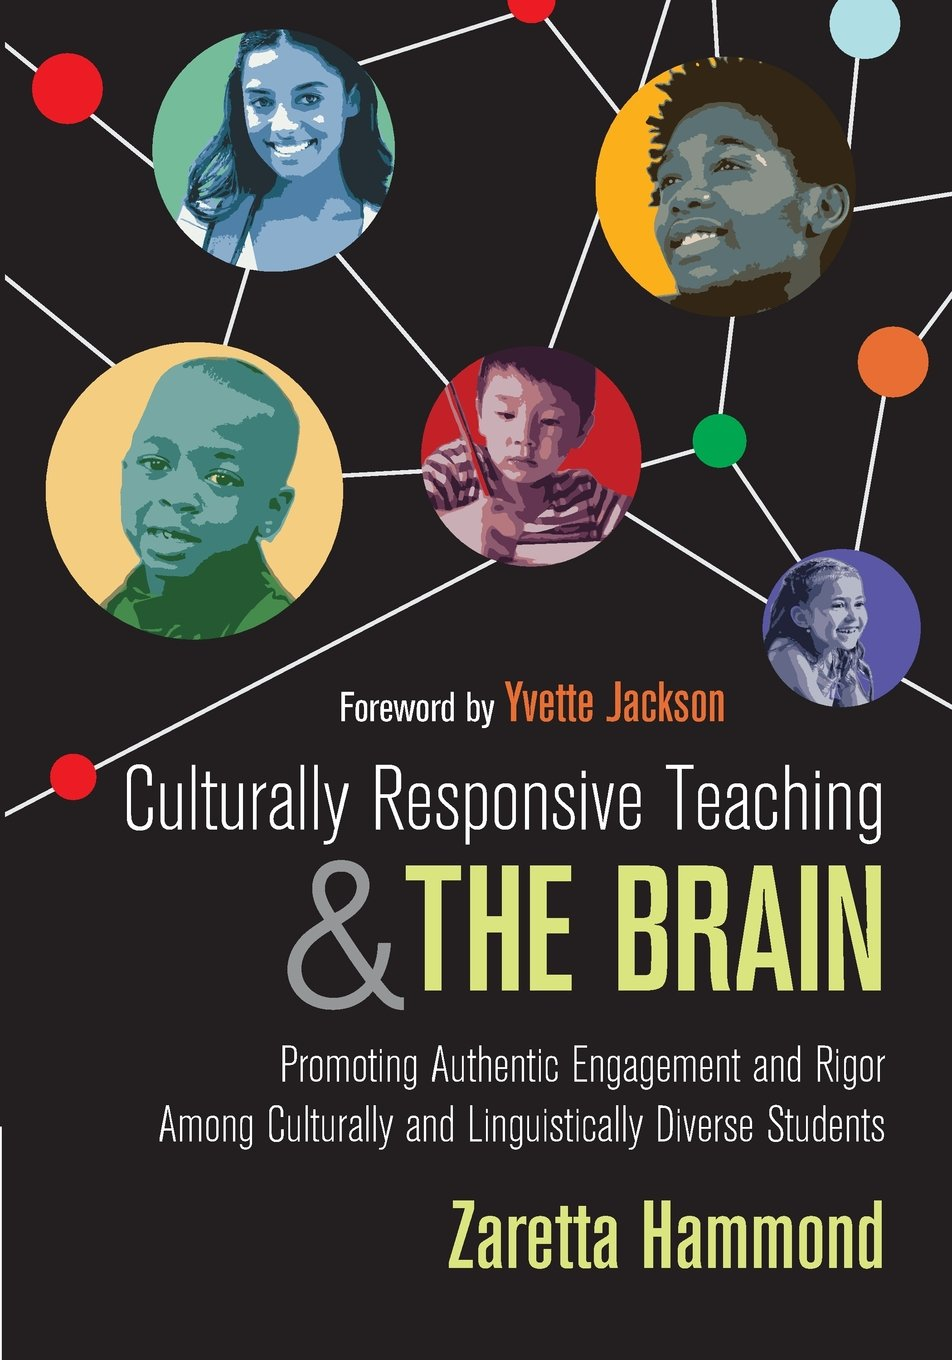 Culturally Responsive Teaching and The Brain: Promoting Authentic Engagement and Rigor Among Culturally and Linguistically Diverse Students by Corwin